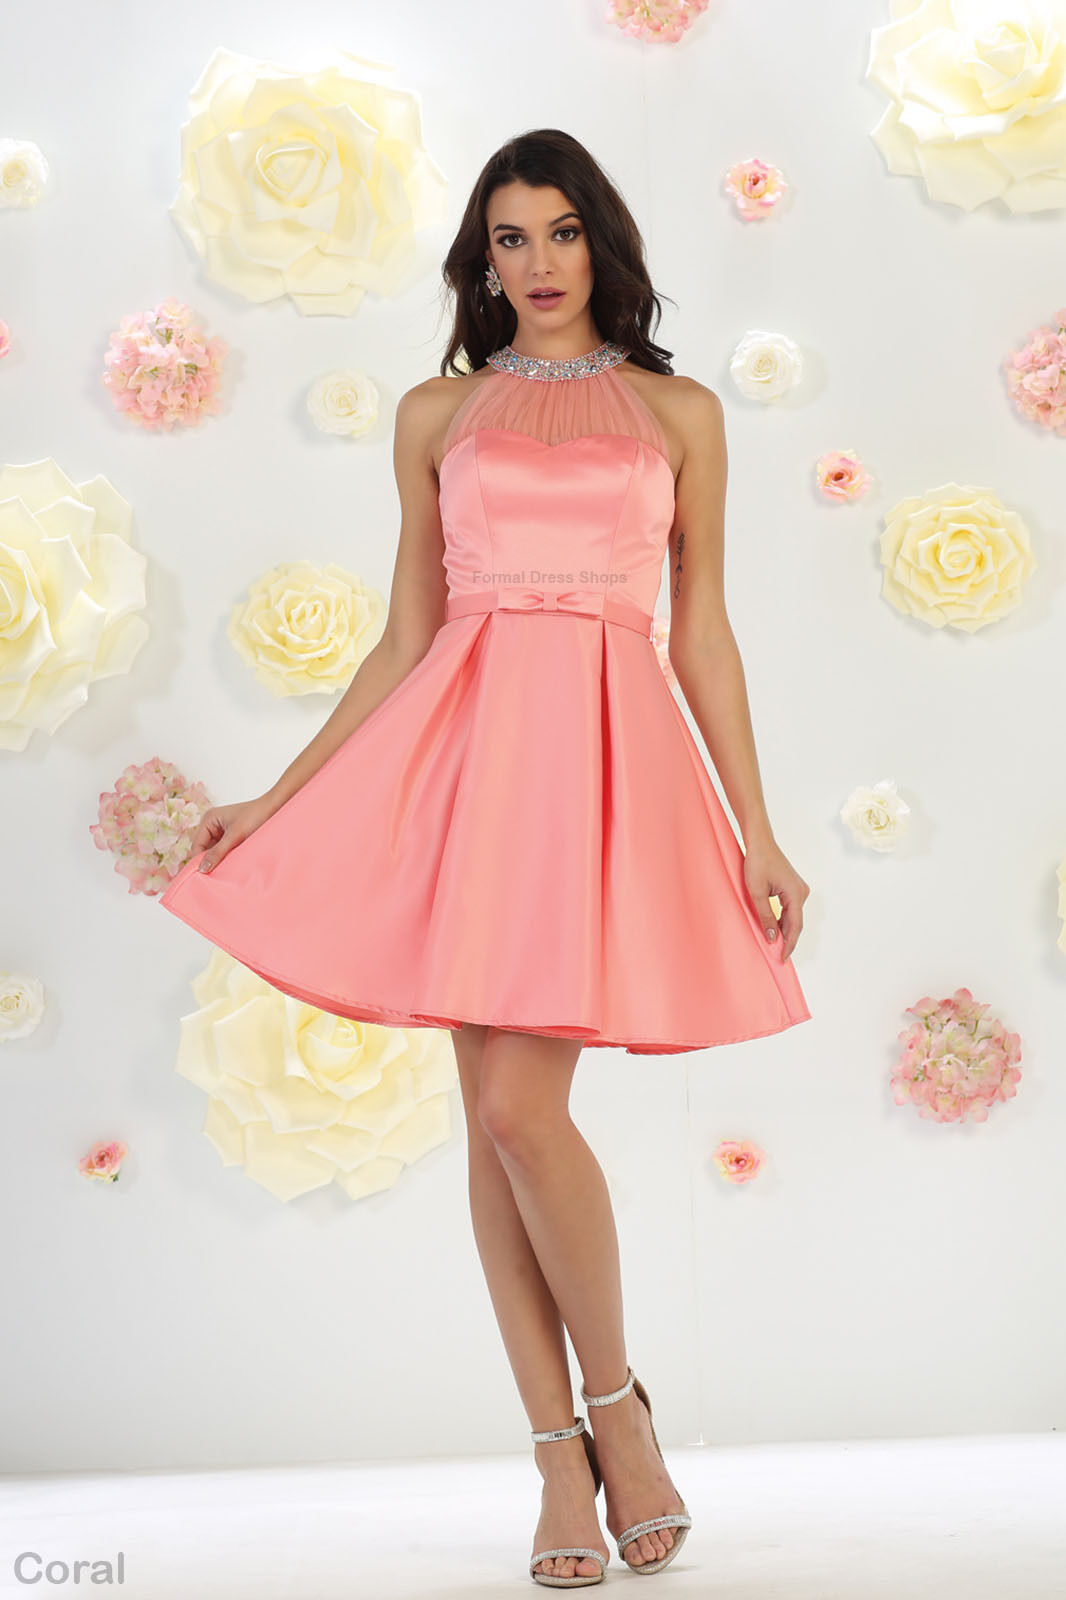 HOMECOMING PROM FLOWY SHORT DRESS COCKTAIL BIRTHDAY PARTY GRADUATION ...